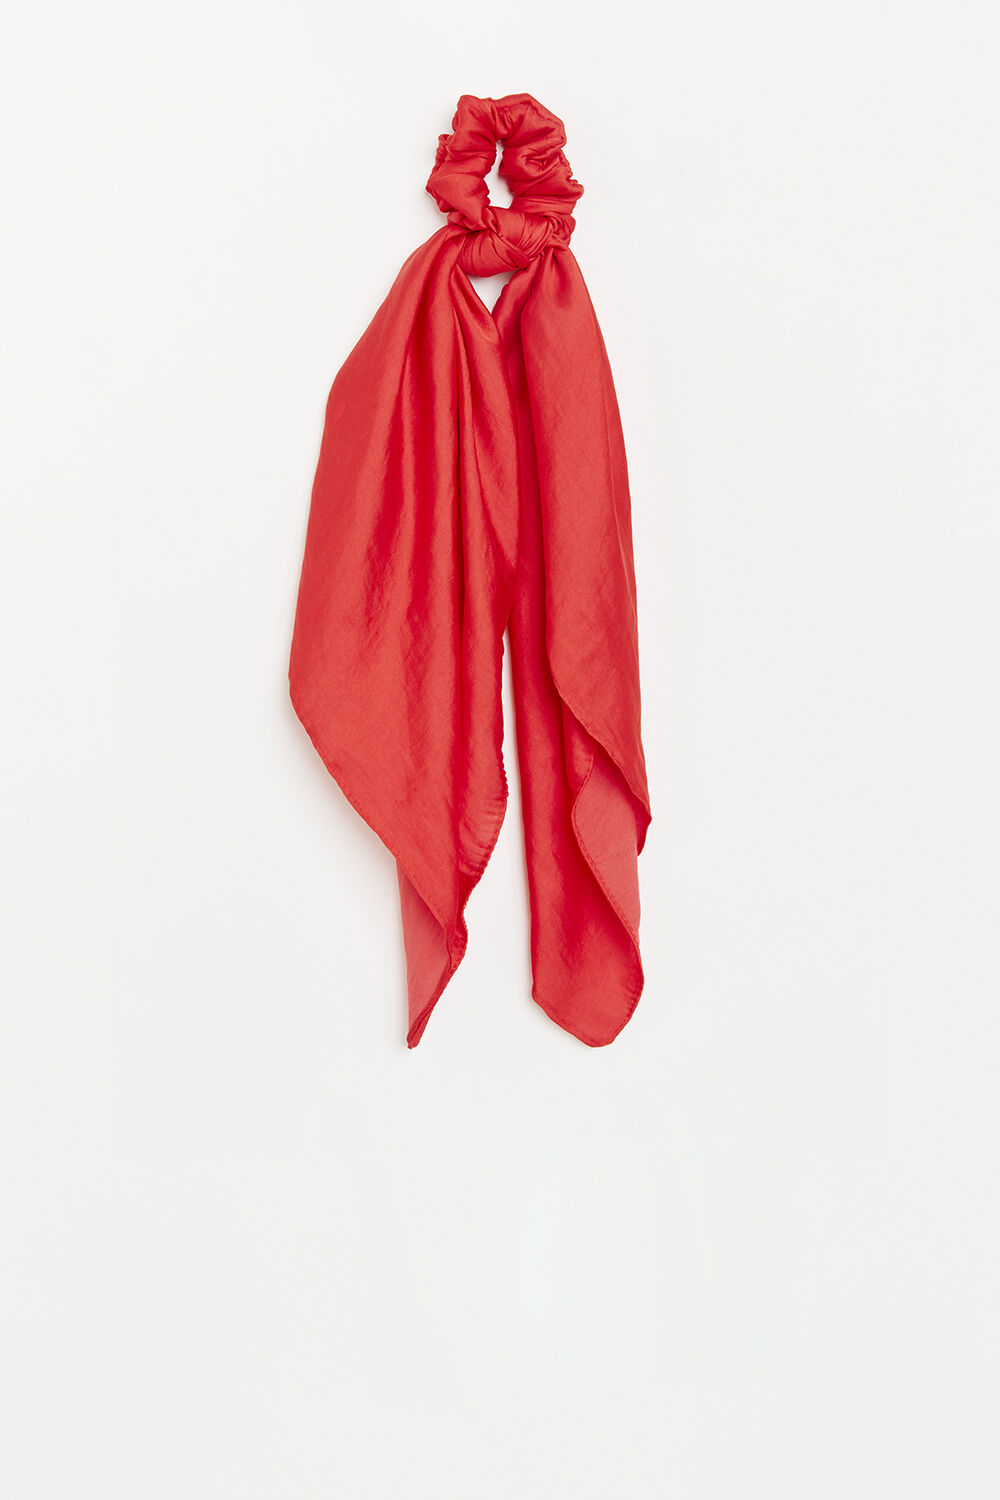 SCRUNCHIE SCARF in colour FIESTA